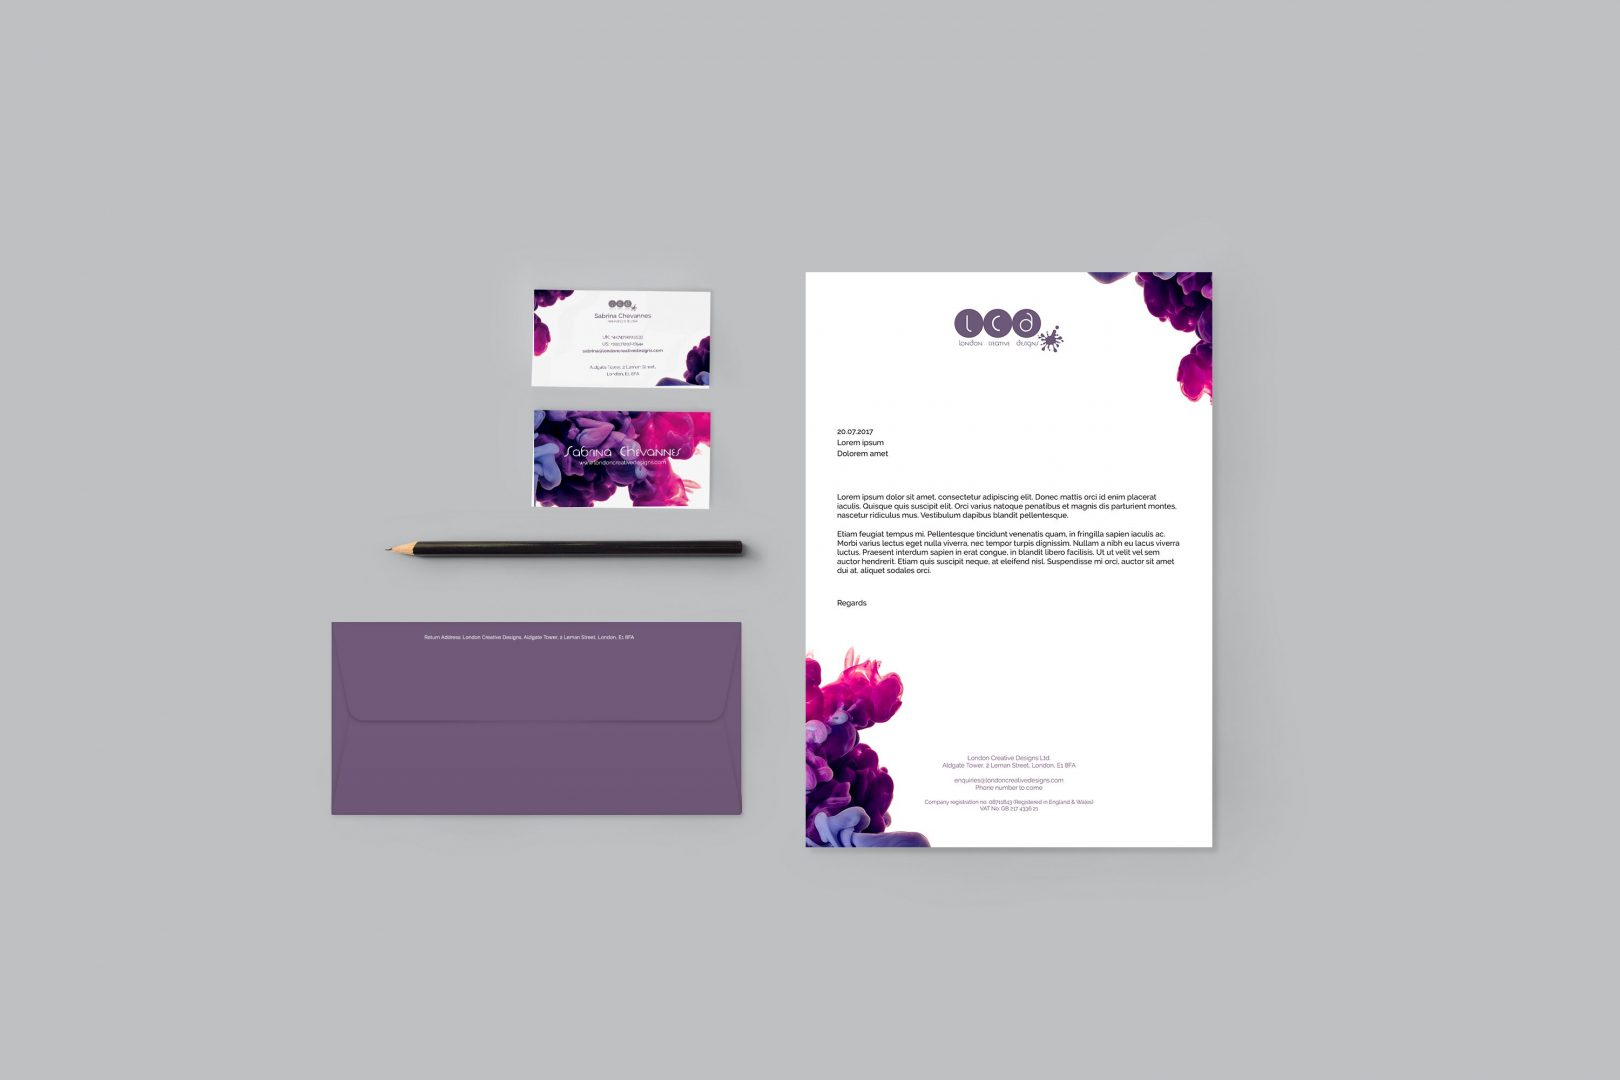 Business card design, letterhead design, envelope design for London Creative Designs